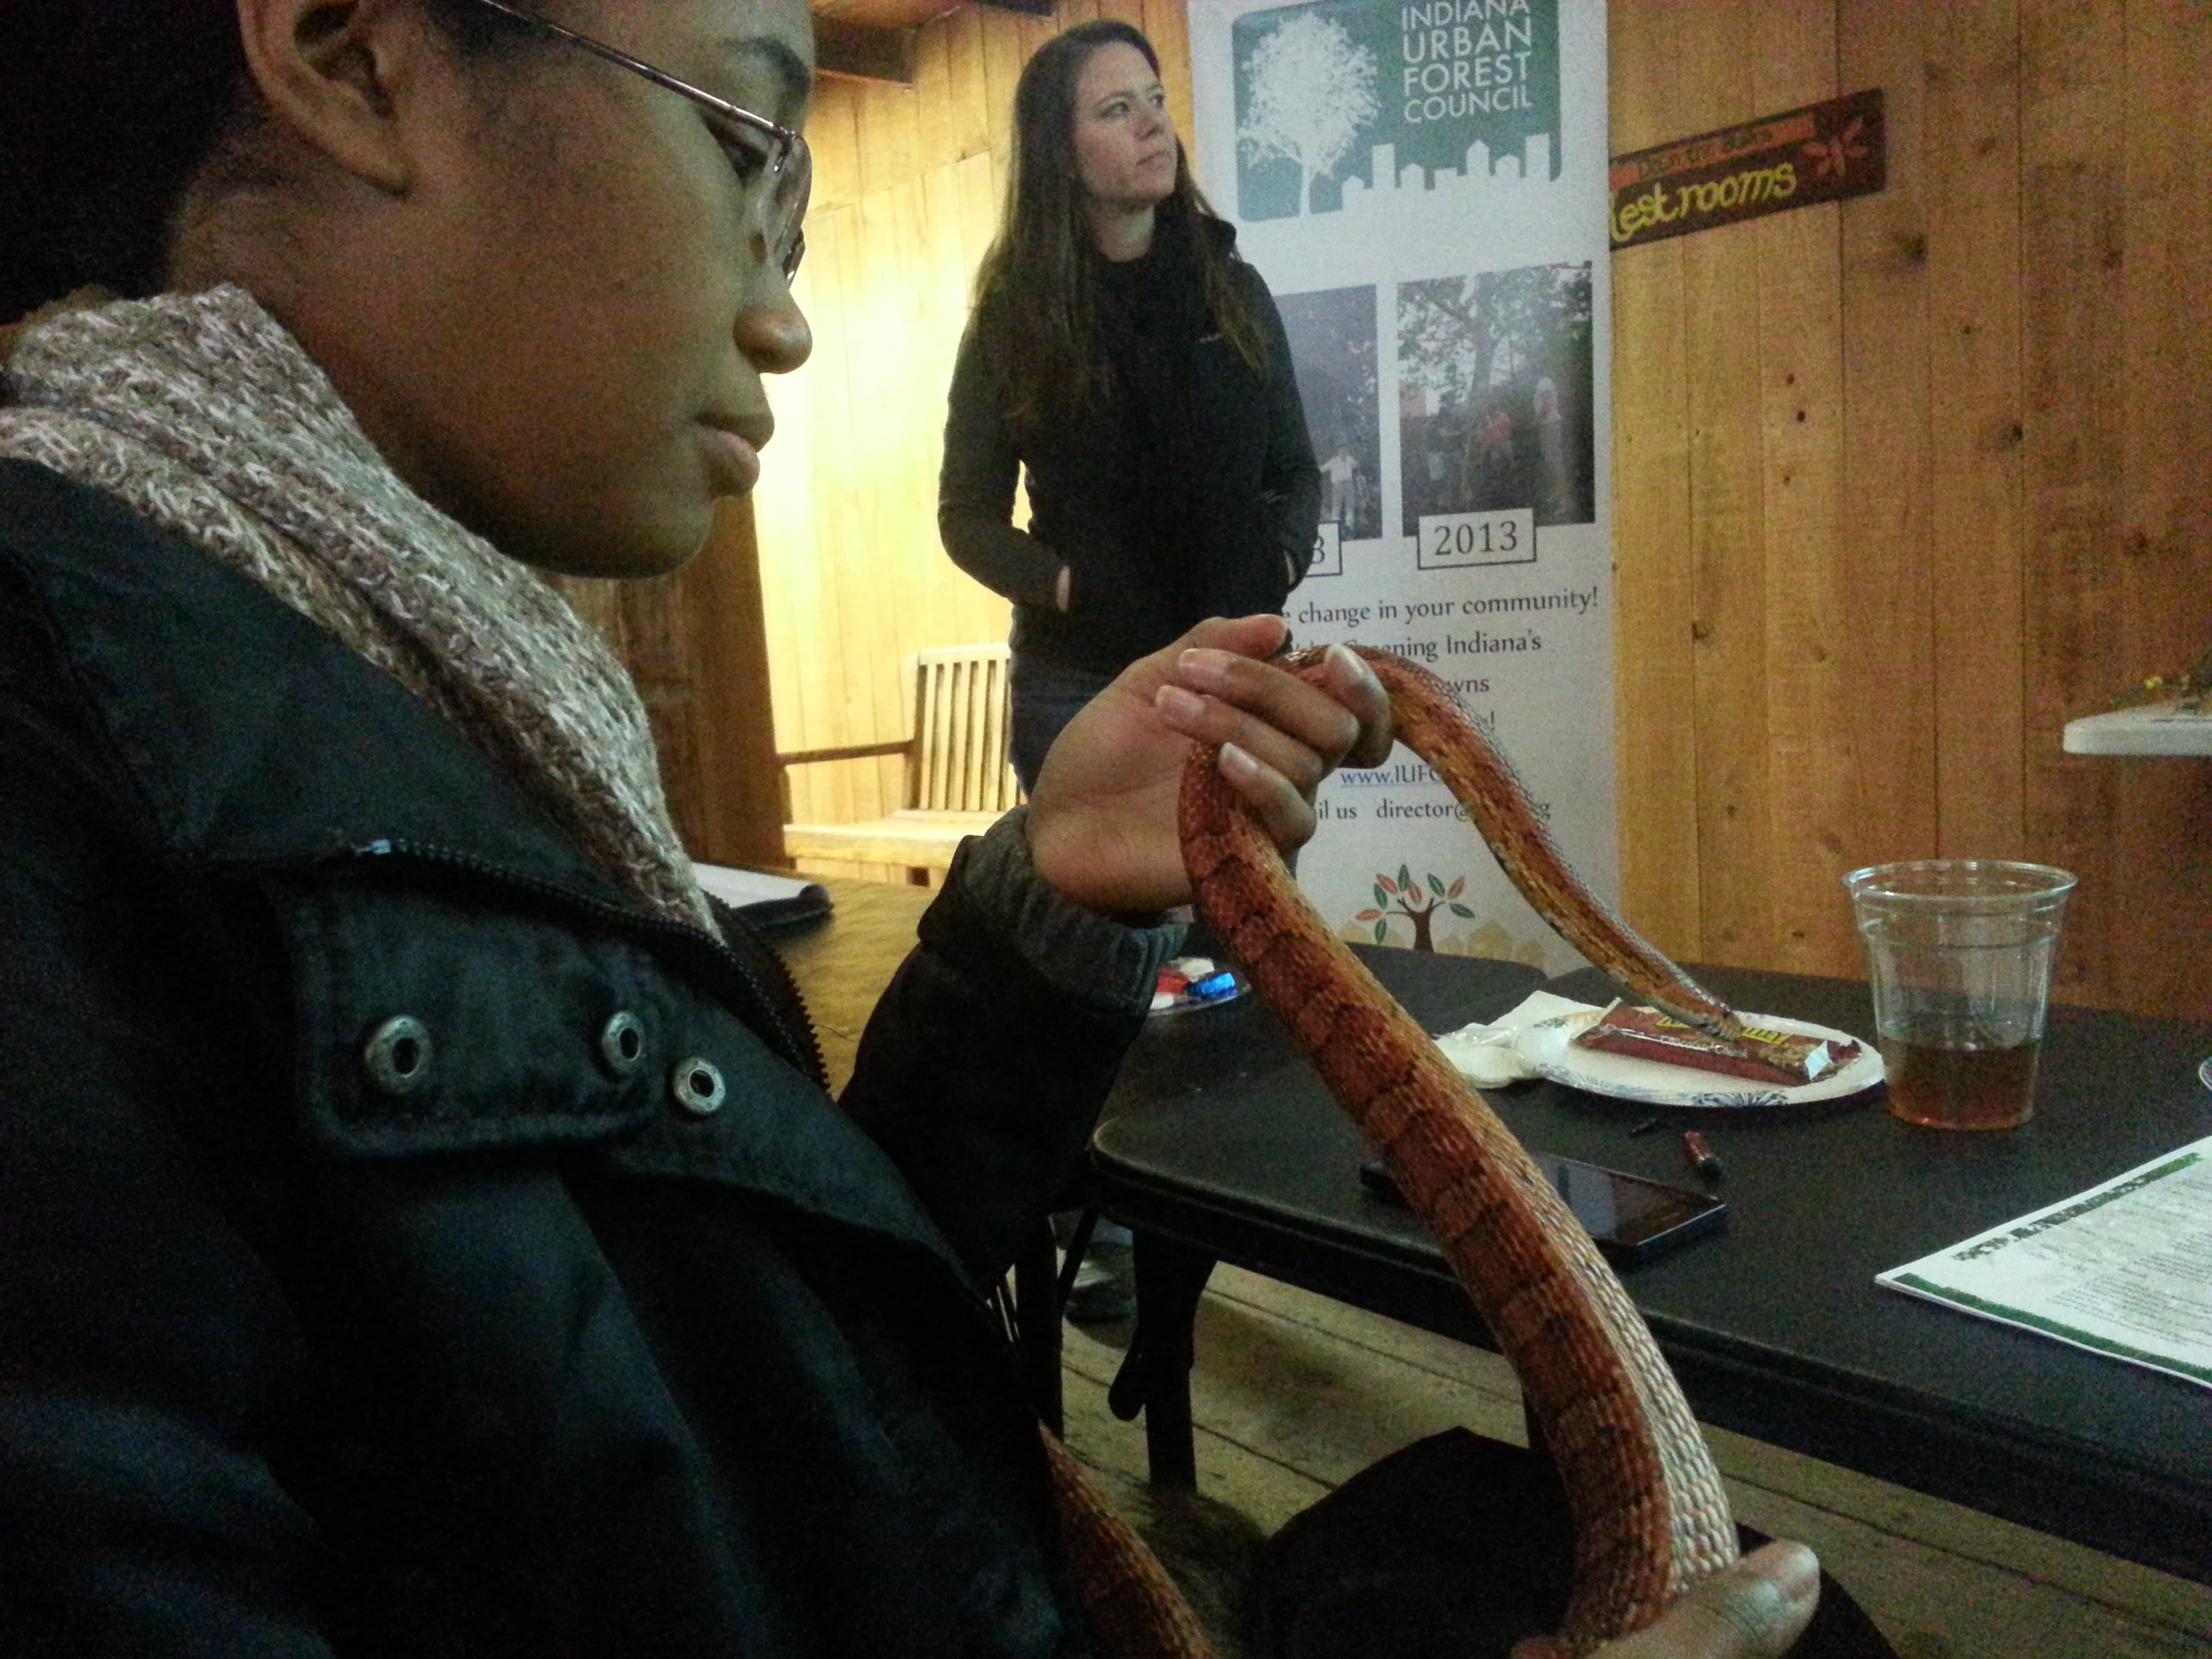 Jaira and the Corn Snake